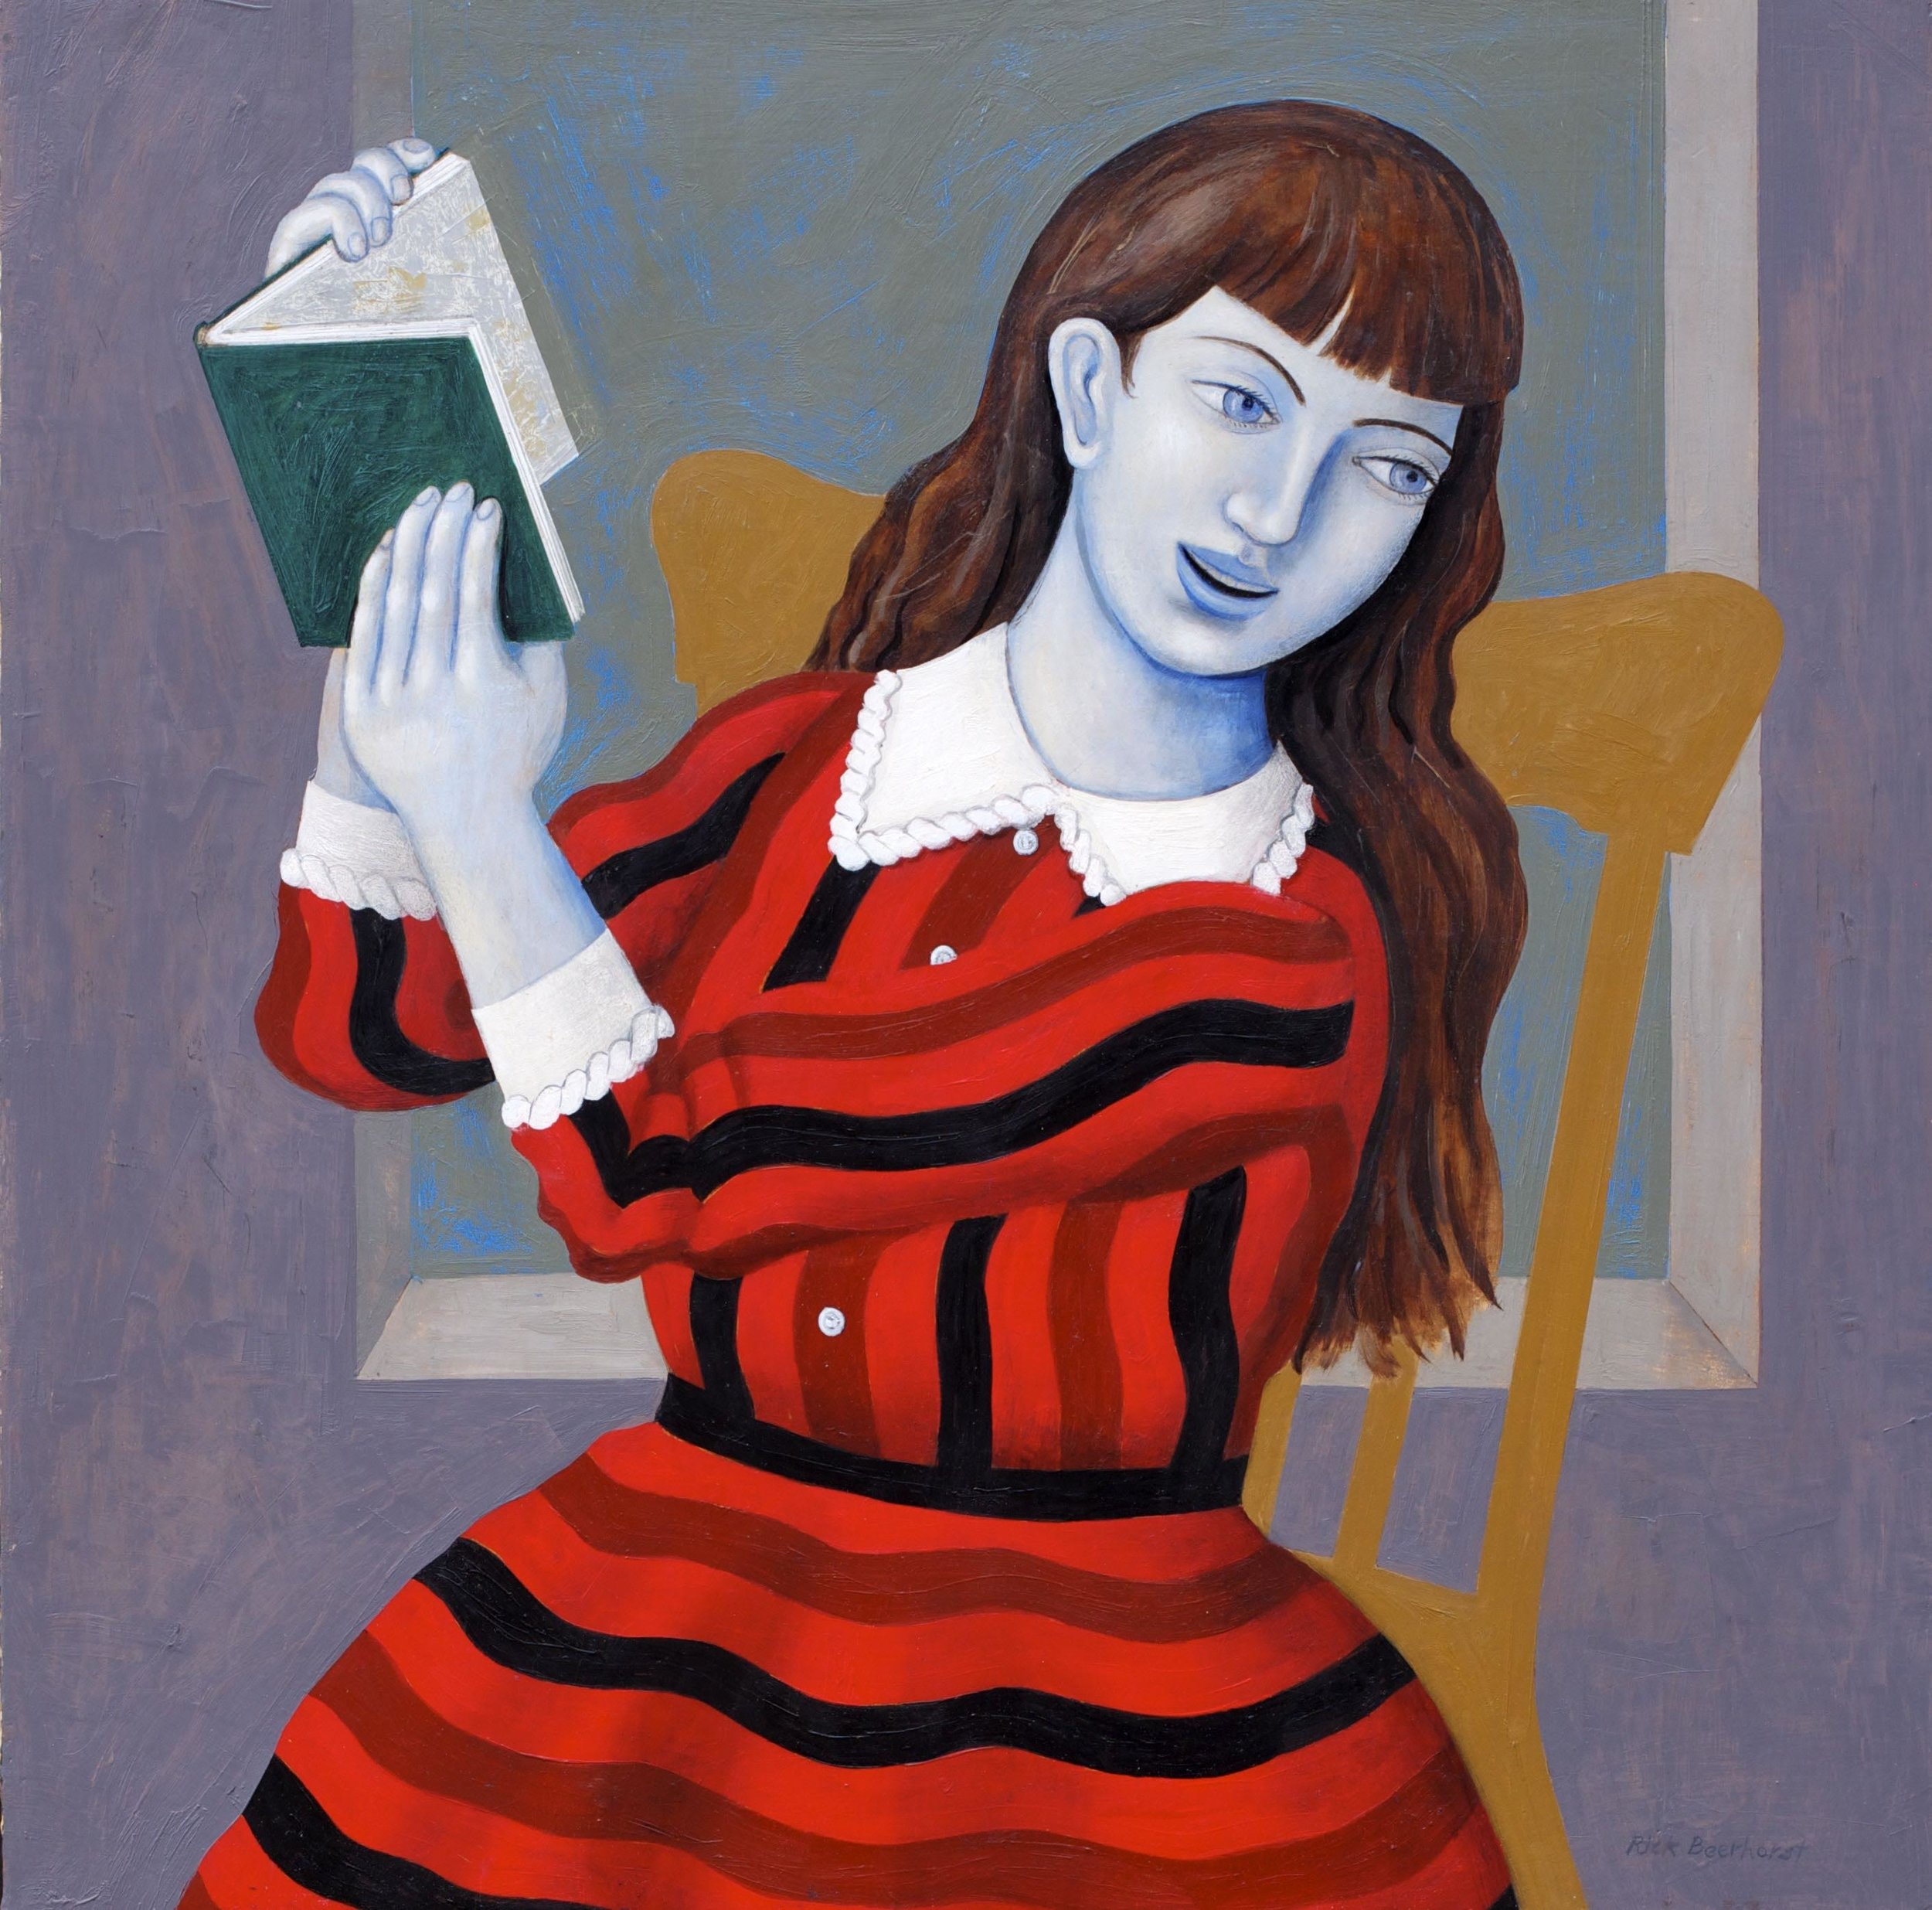 Girl with Green Book and Red Striped Dress